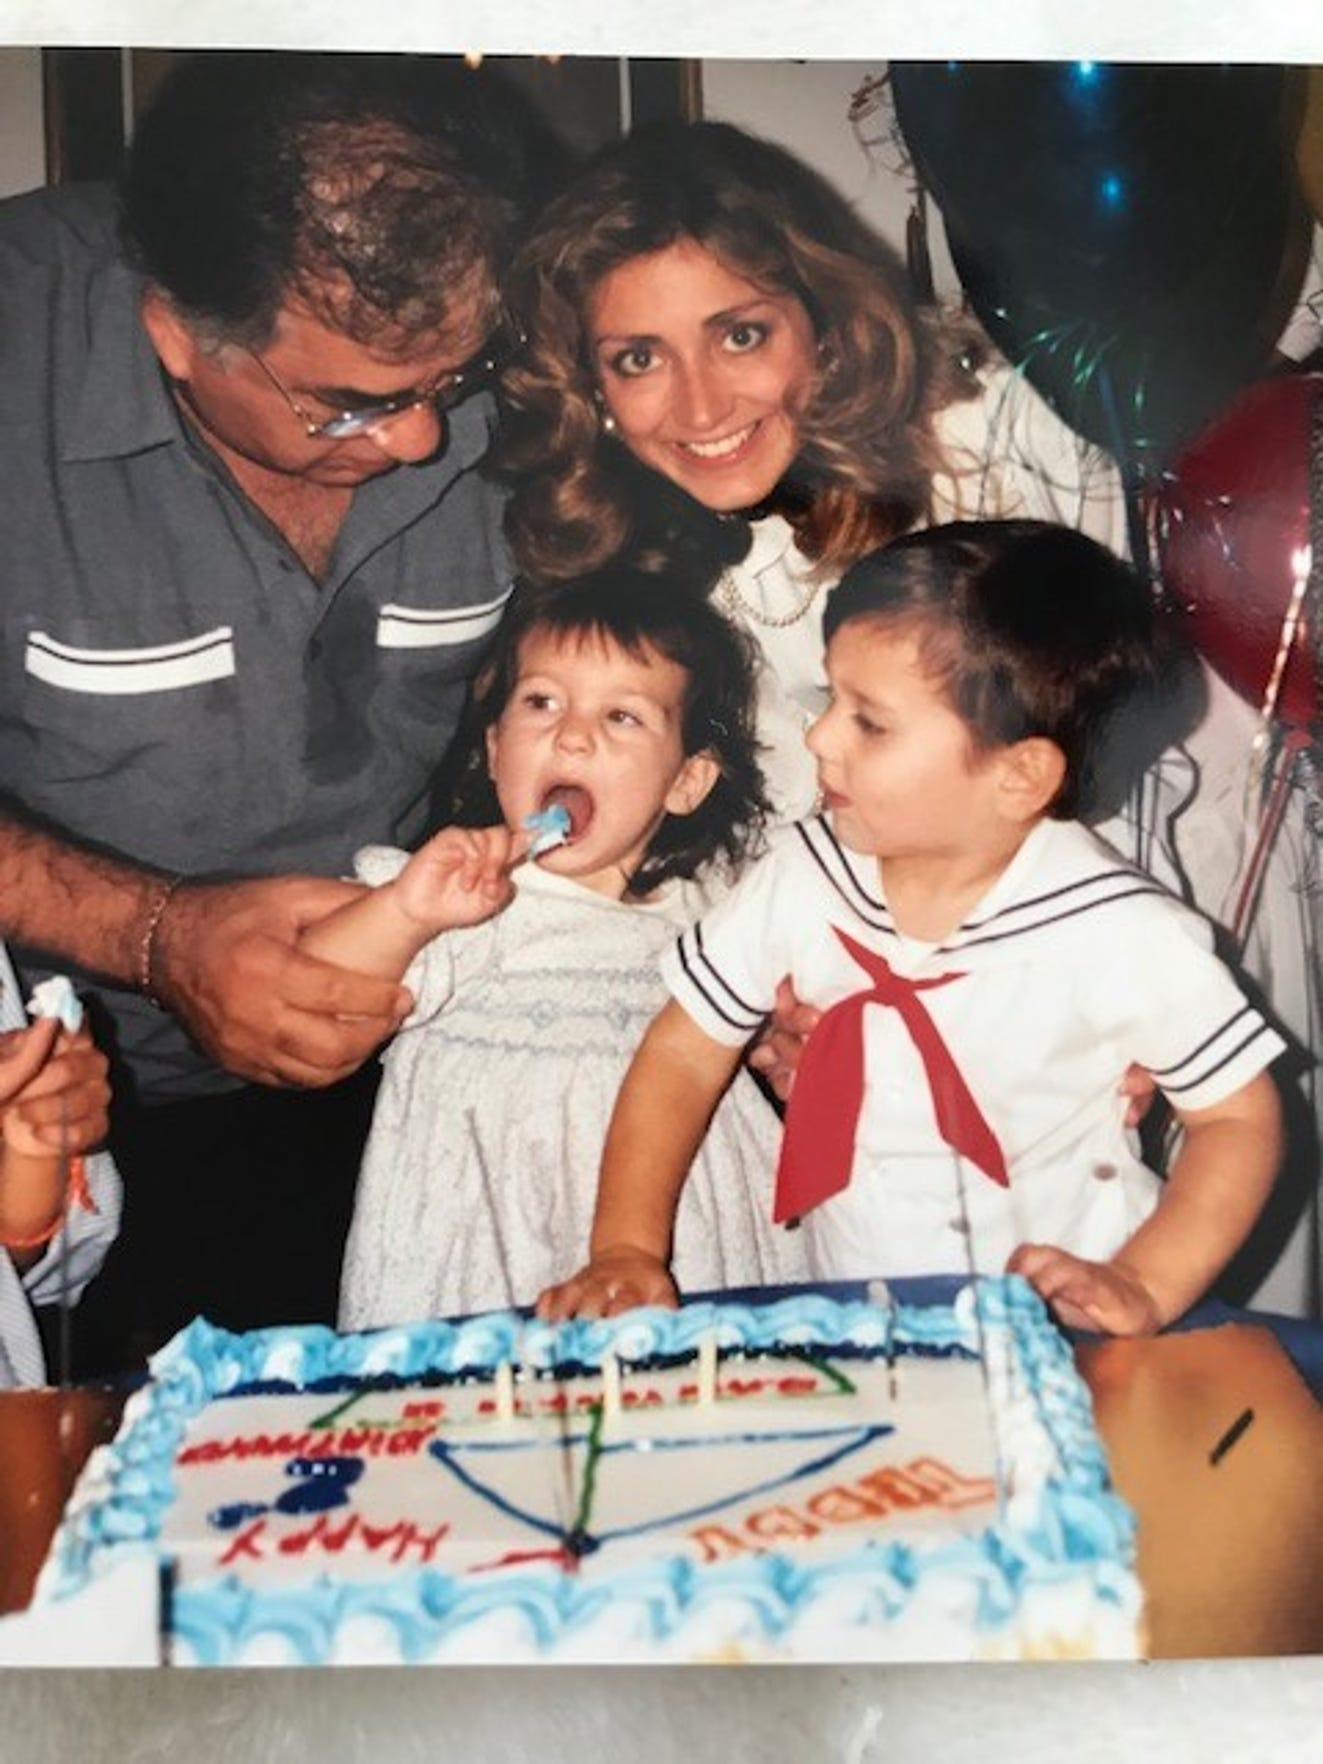 Teddy Geiger's second birthday celebration with her 'Da' and family